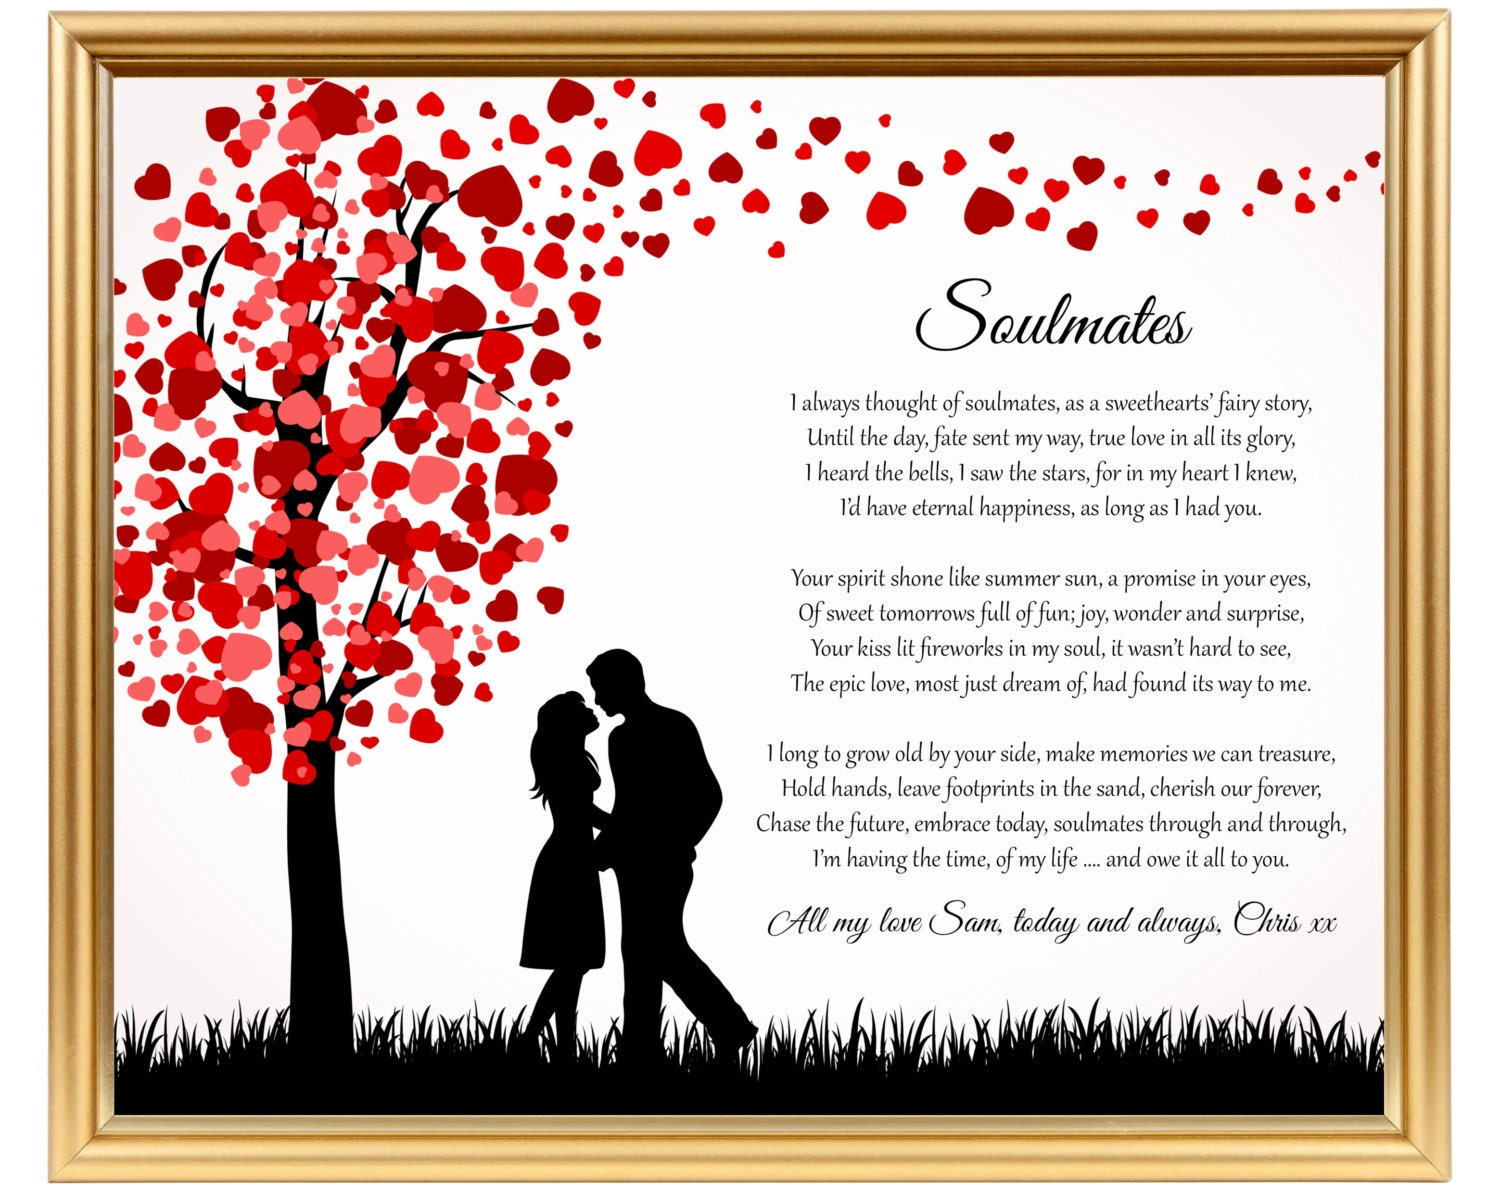 Gifts For Husband 25th Wedding Anniversary: Soulmates Wedding Anniversary Poetry Gifts For Anniversary For